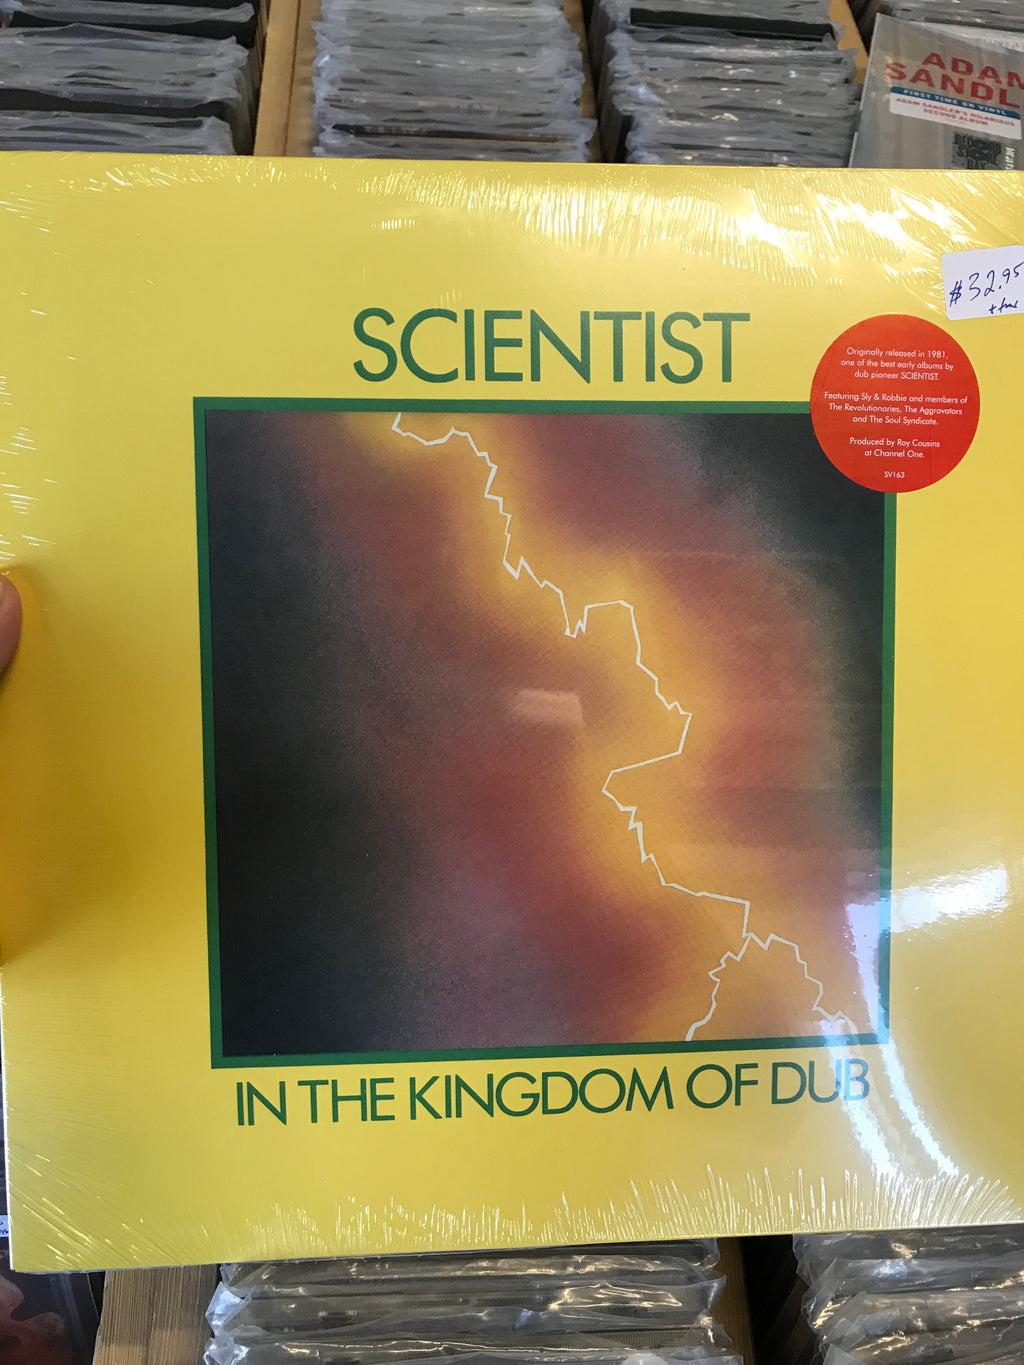 Scientist - In The Kingdom Of Dub - New Vinyl LP